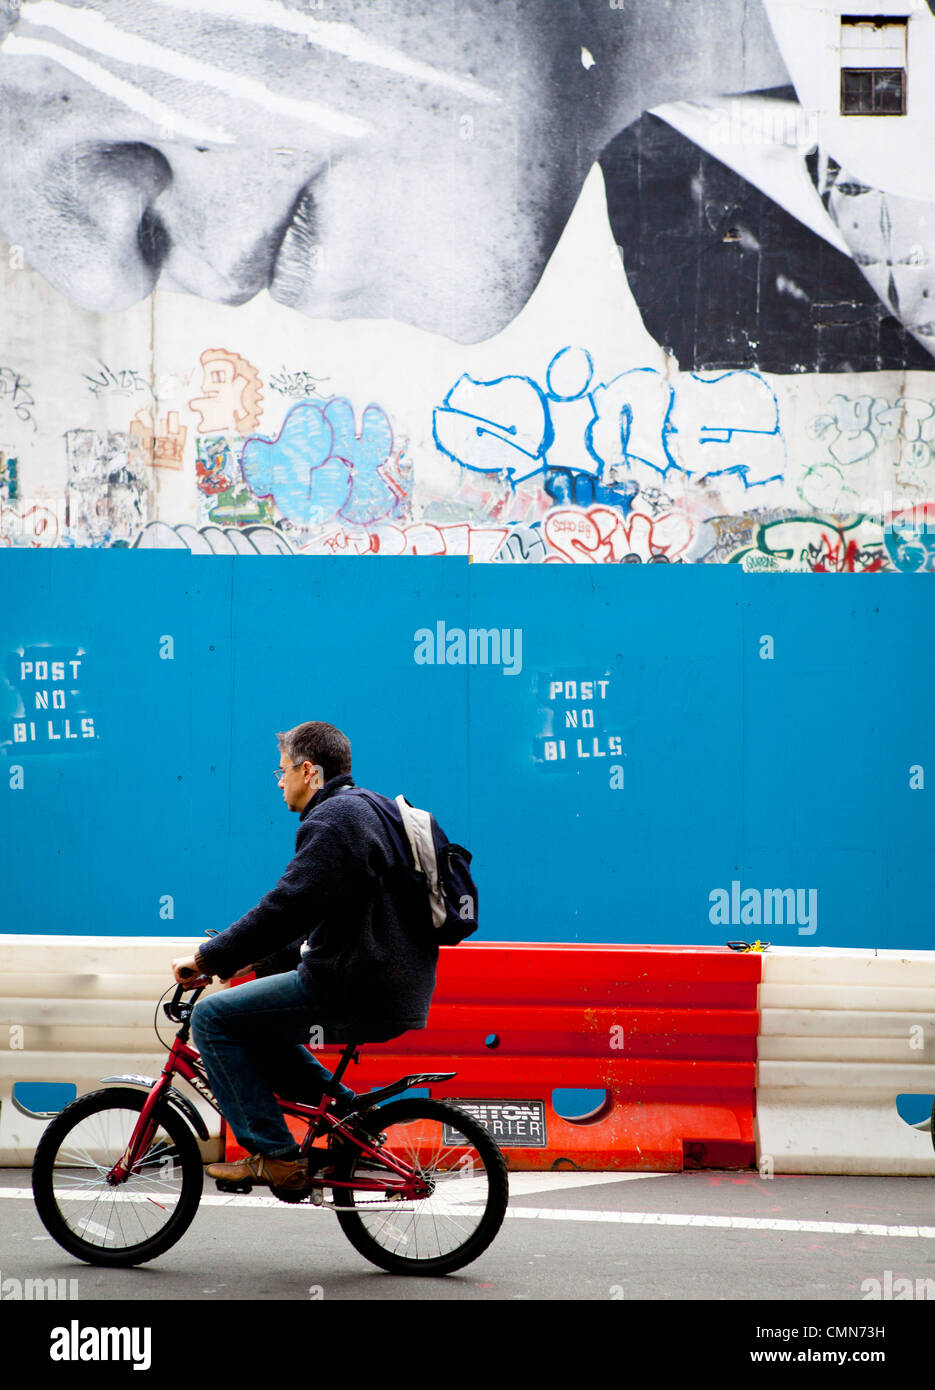 man on bike with billboard, New York Stock Photo